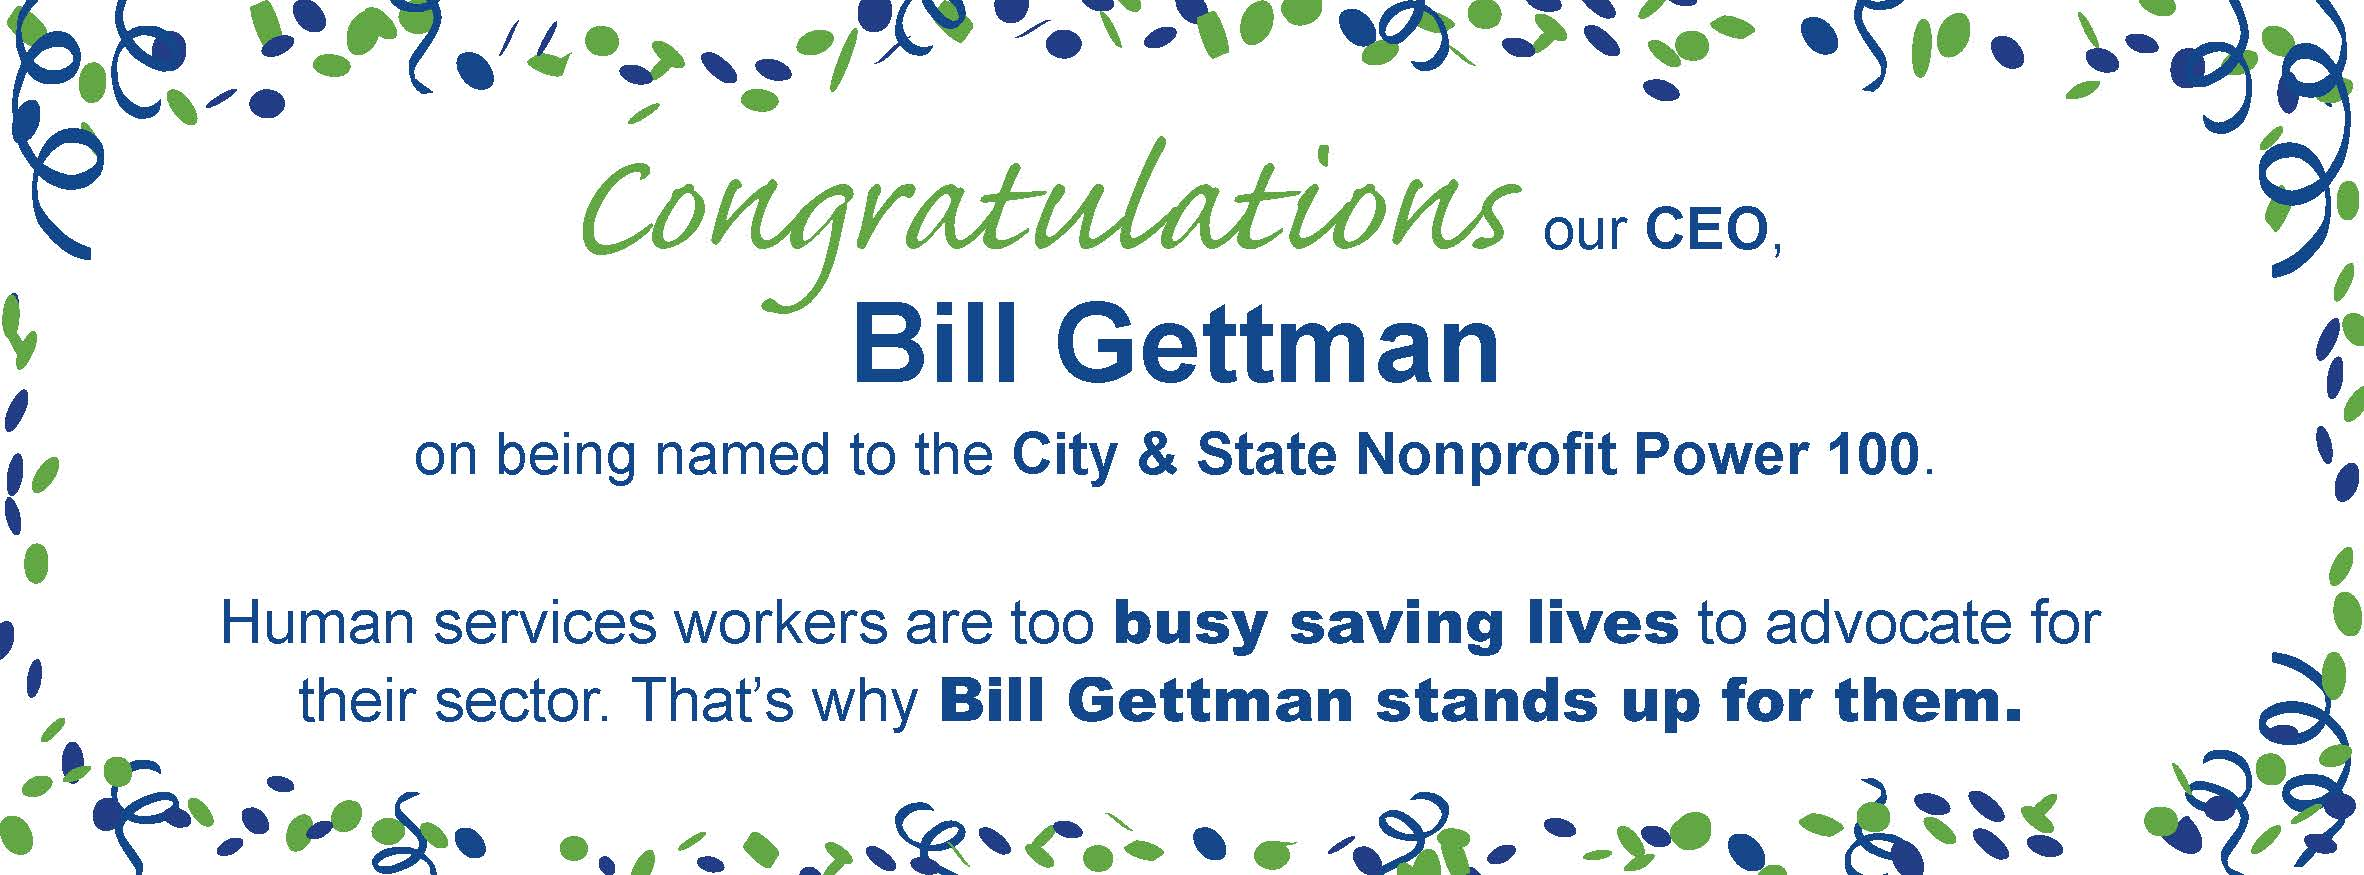 20210222 Congrats Gettman   City And State Awards   Website Slider